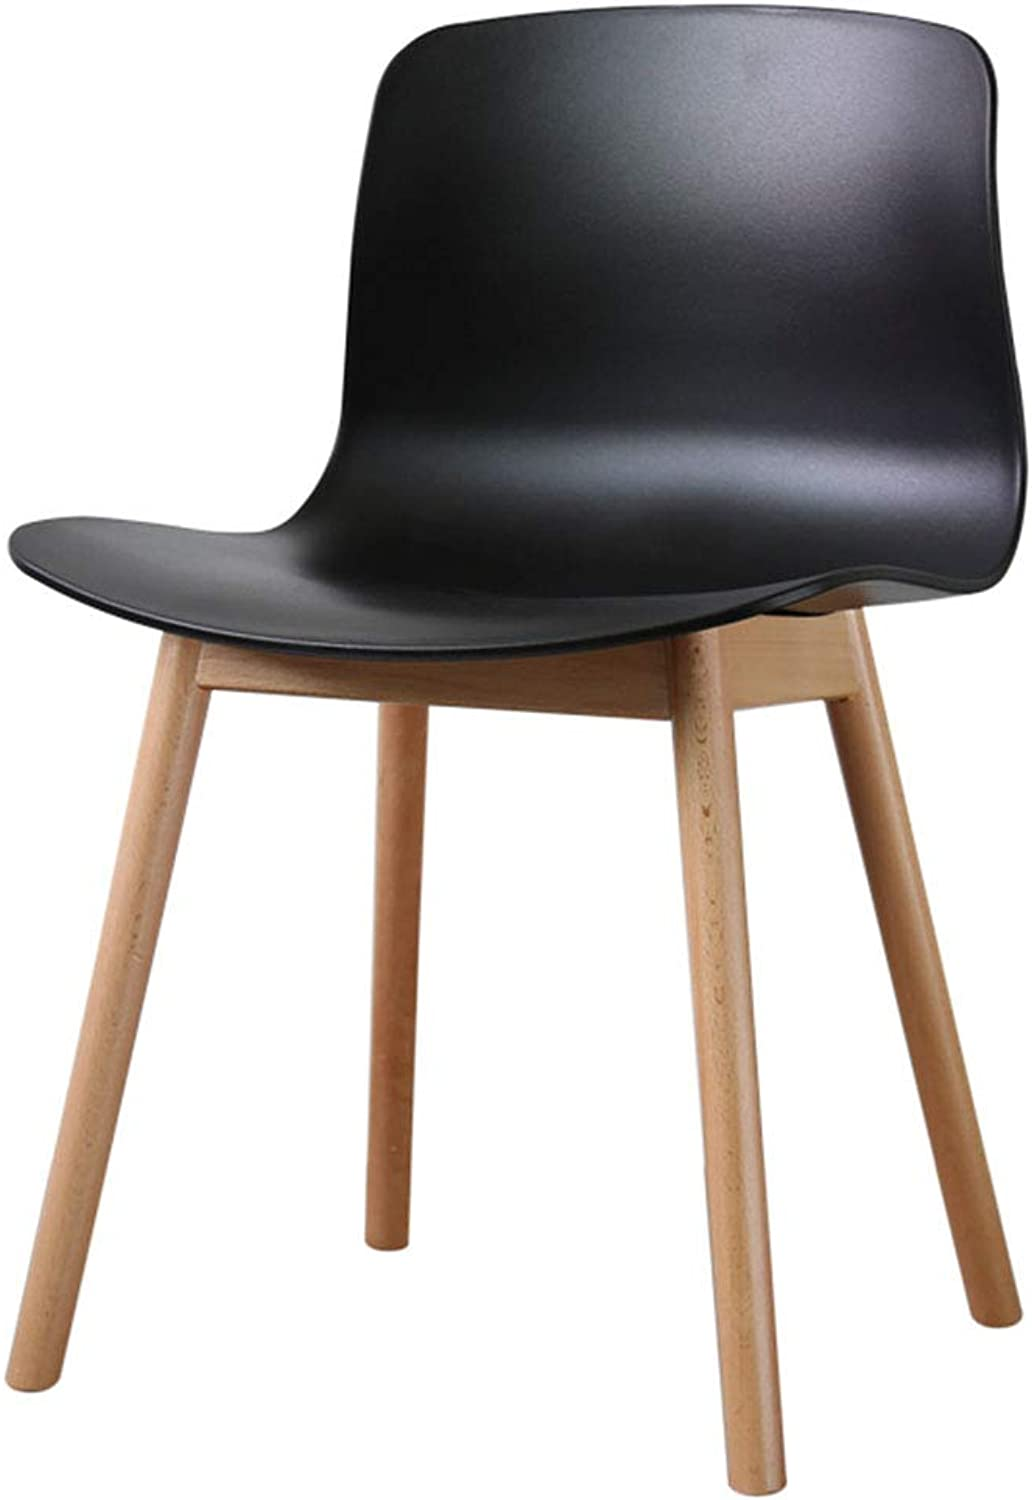 ad2ad401367b CAIJUN Chair Multifunction Household PP Plastic Seat Solid Wood ...